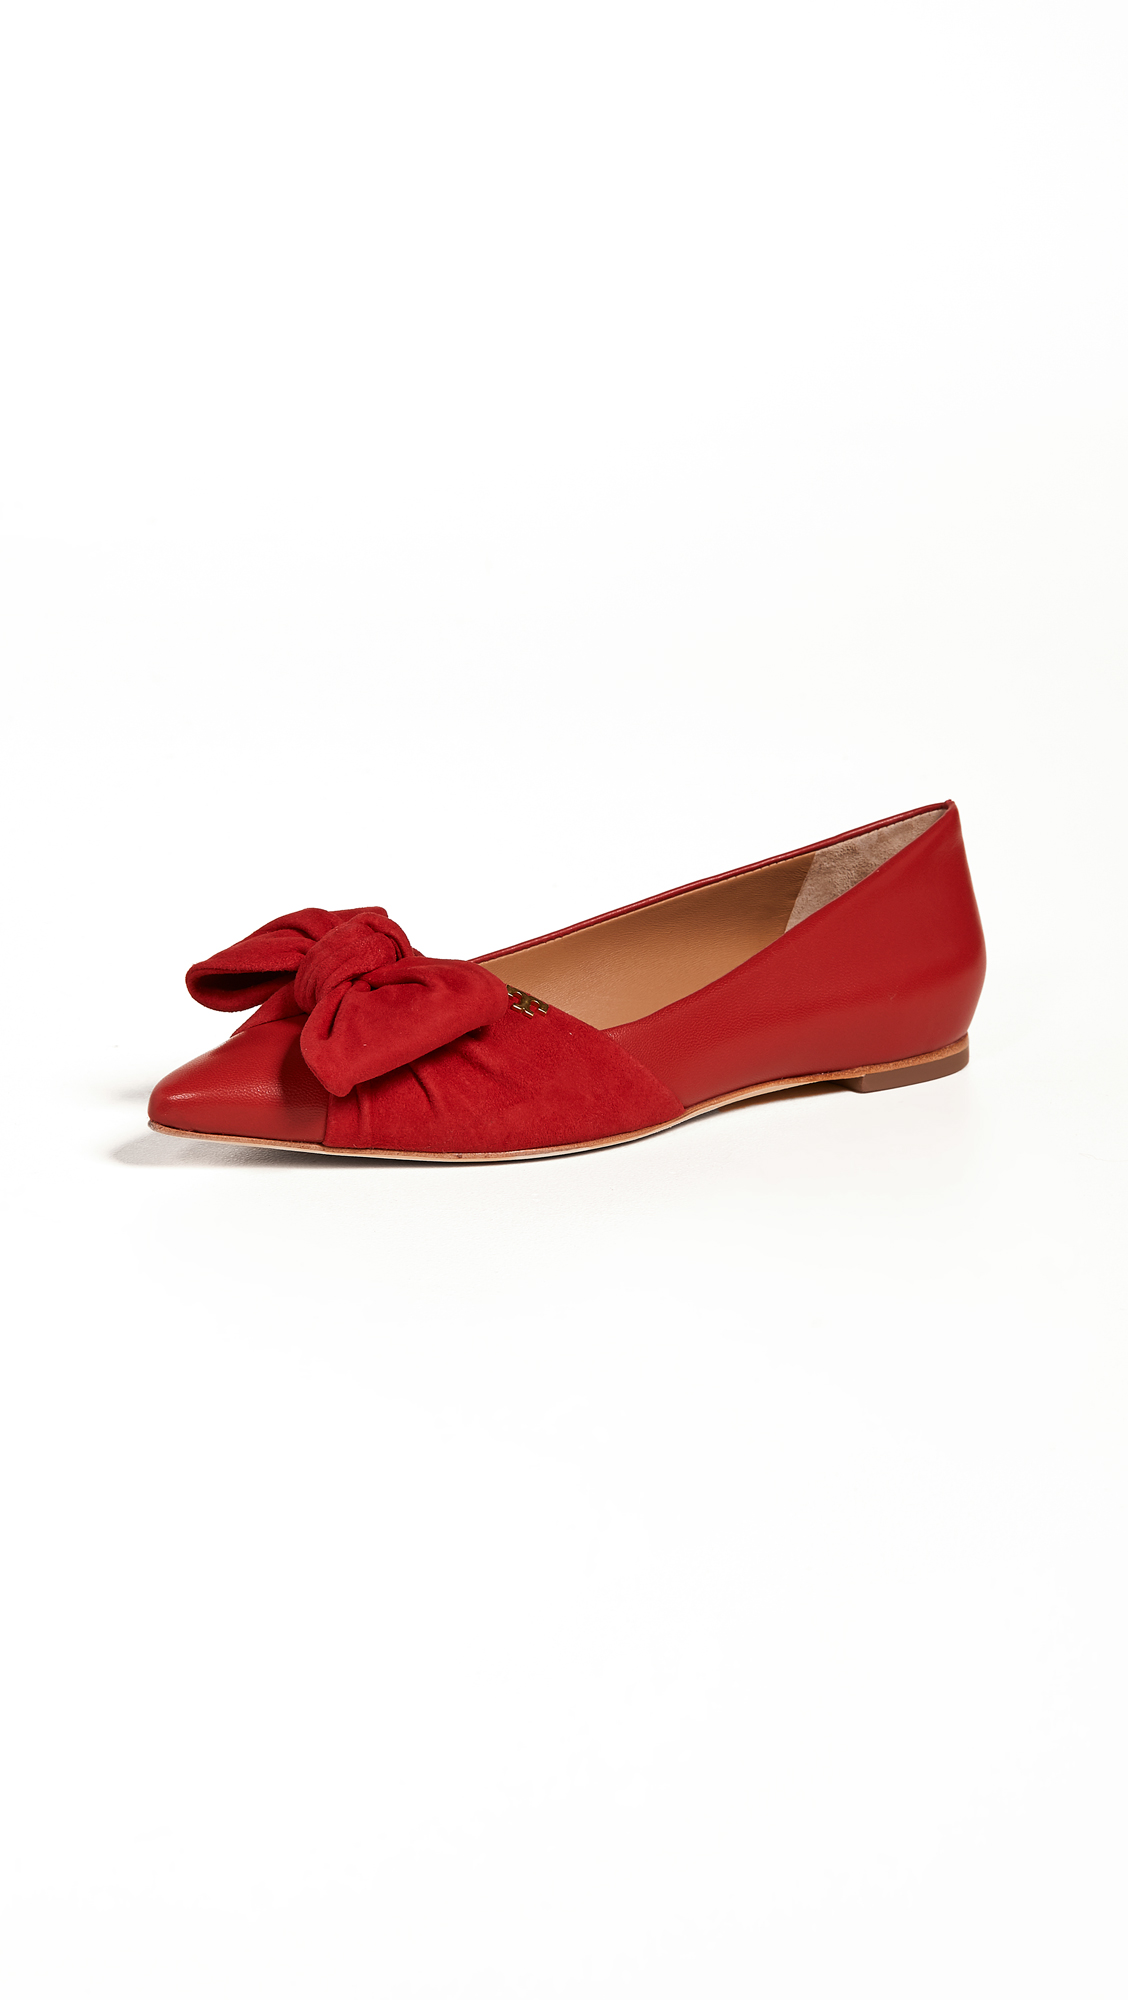 Tory Burch Eleanor Flats - Brilliant Red